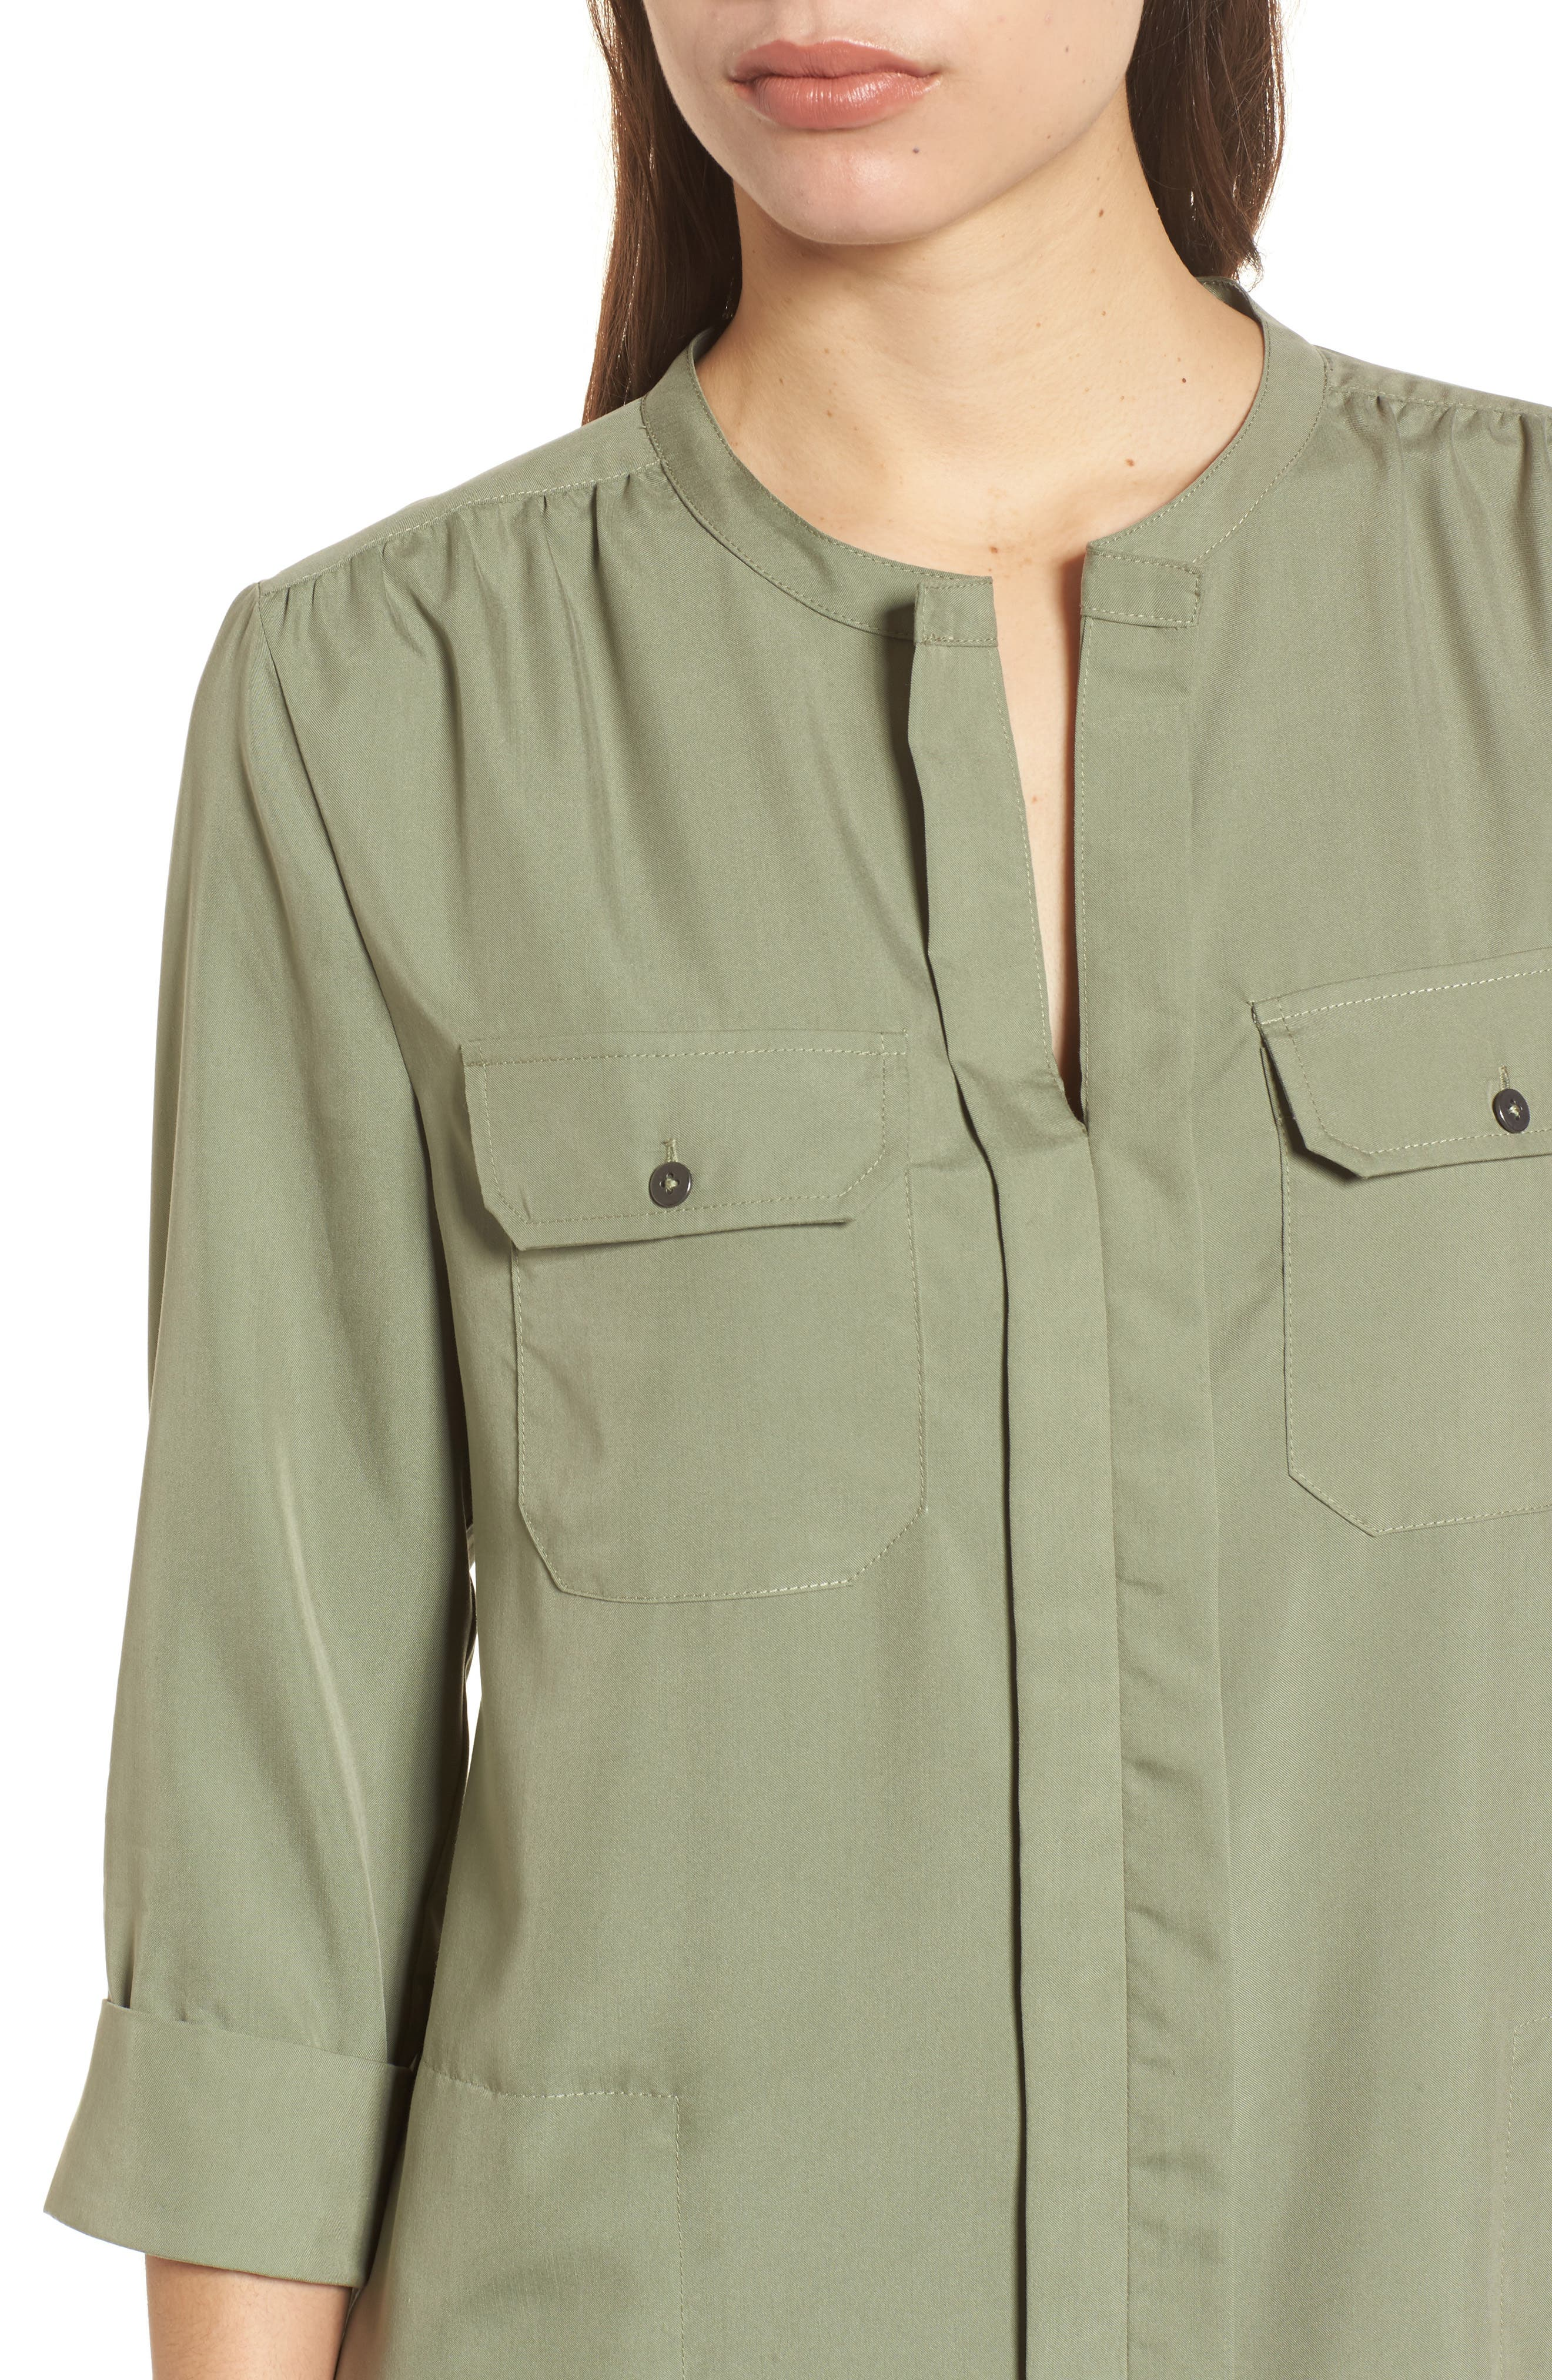 Wanderlust Shirtdress,                             Alternate thumbnail 4, color,                             Spring Moss